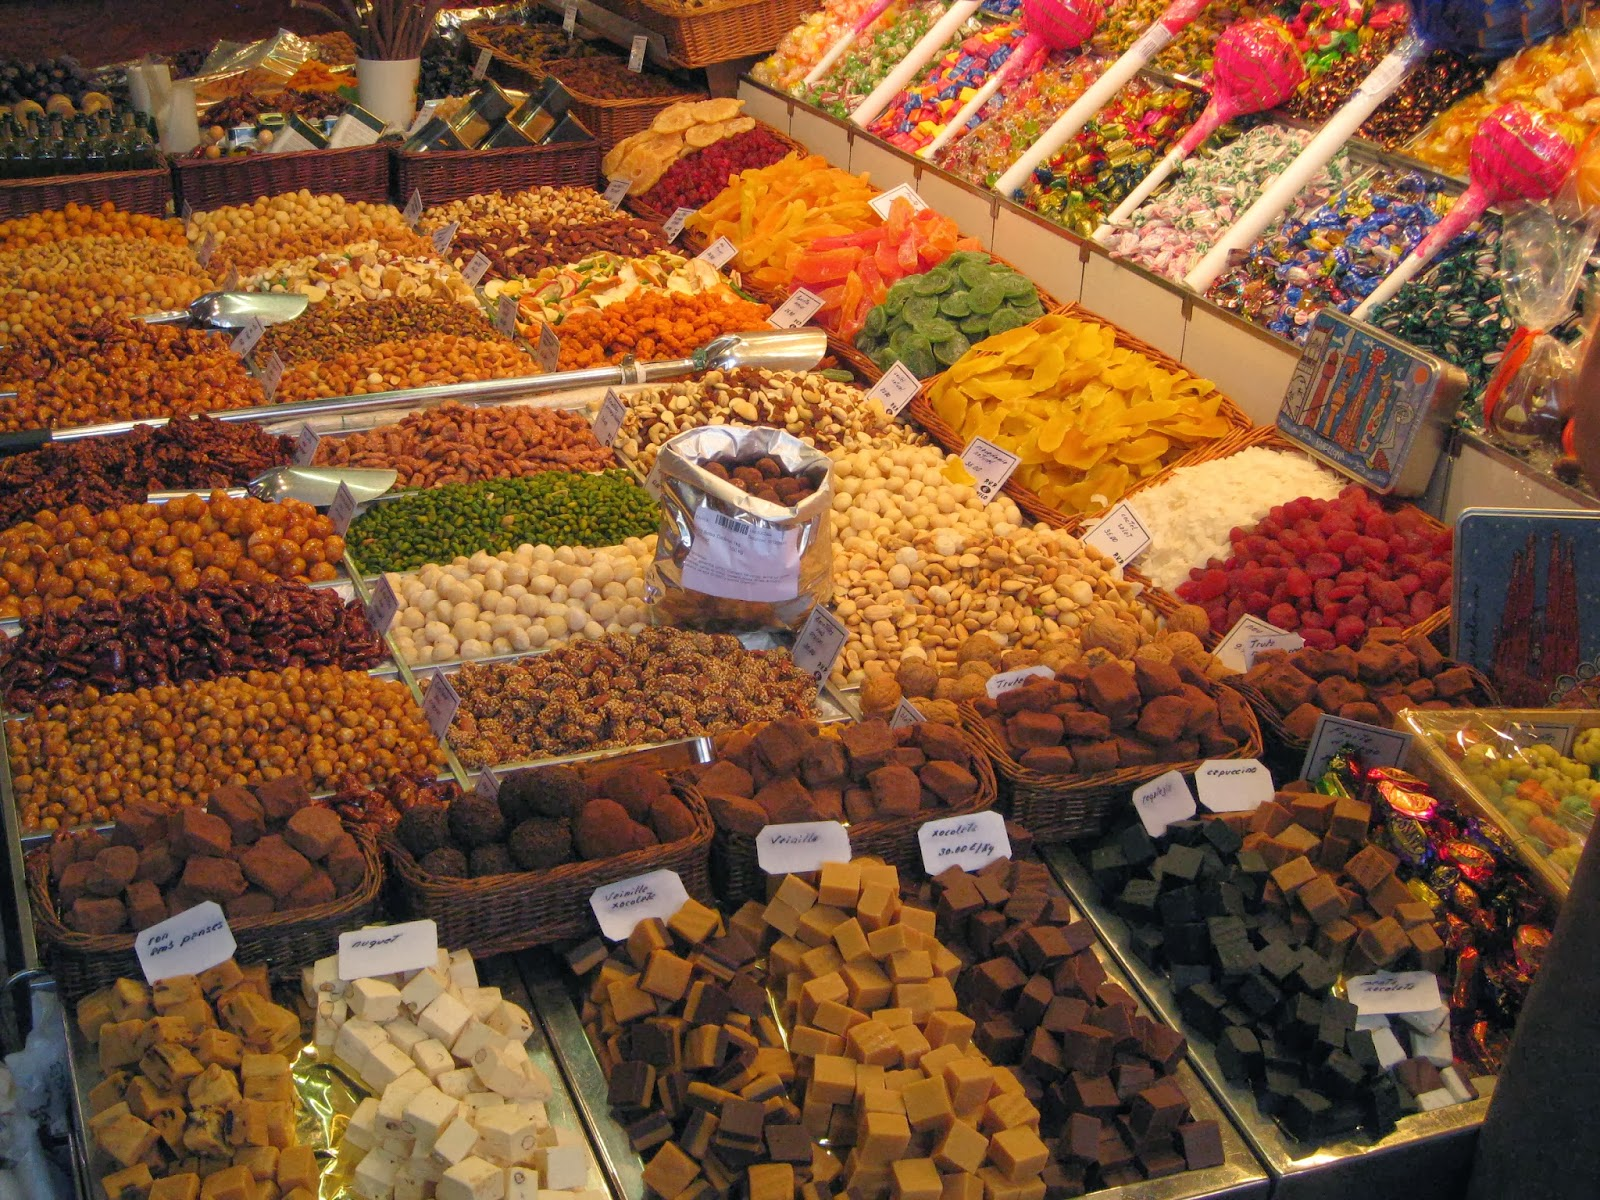 Barcelona - dried fruit and nuts in La Boqueria market